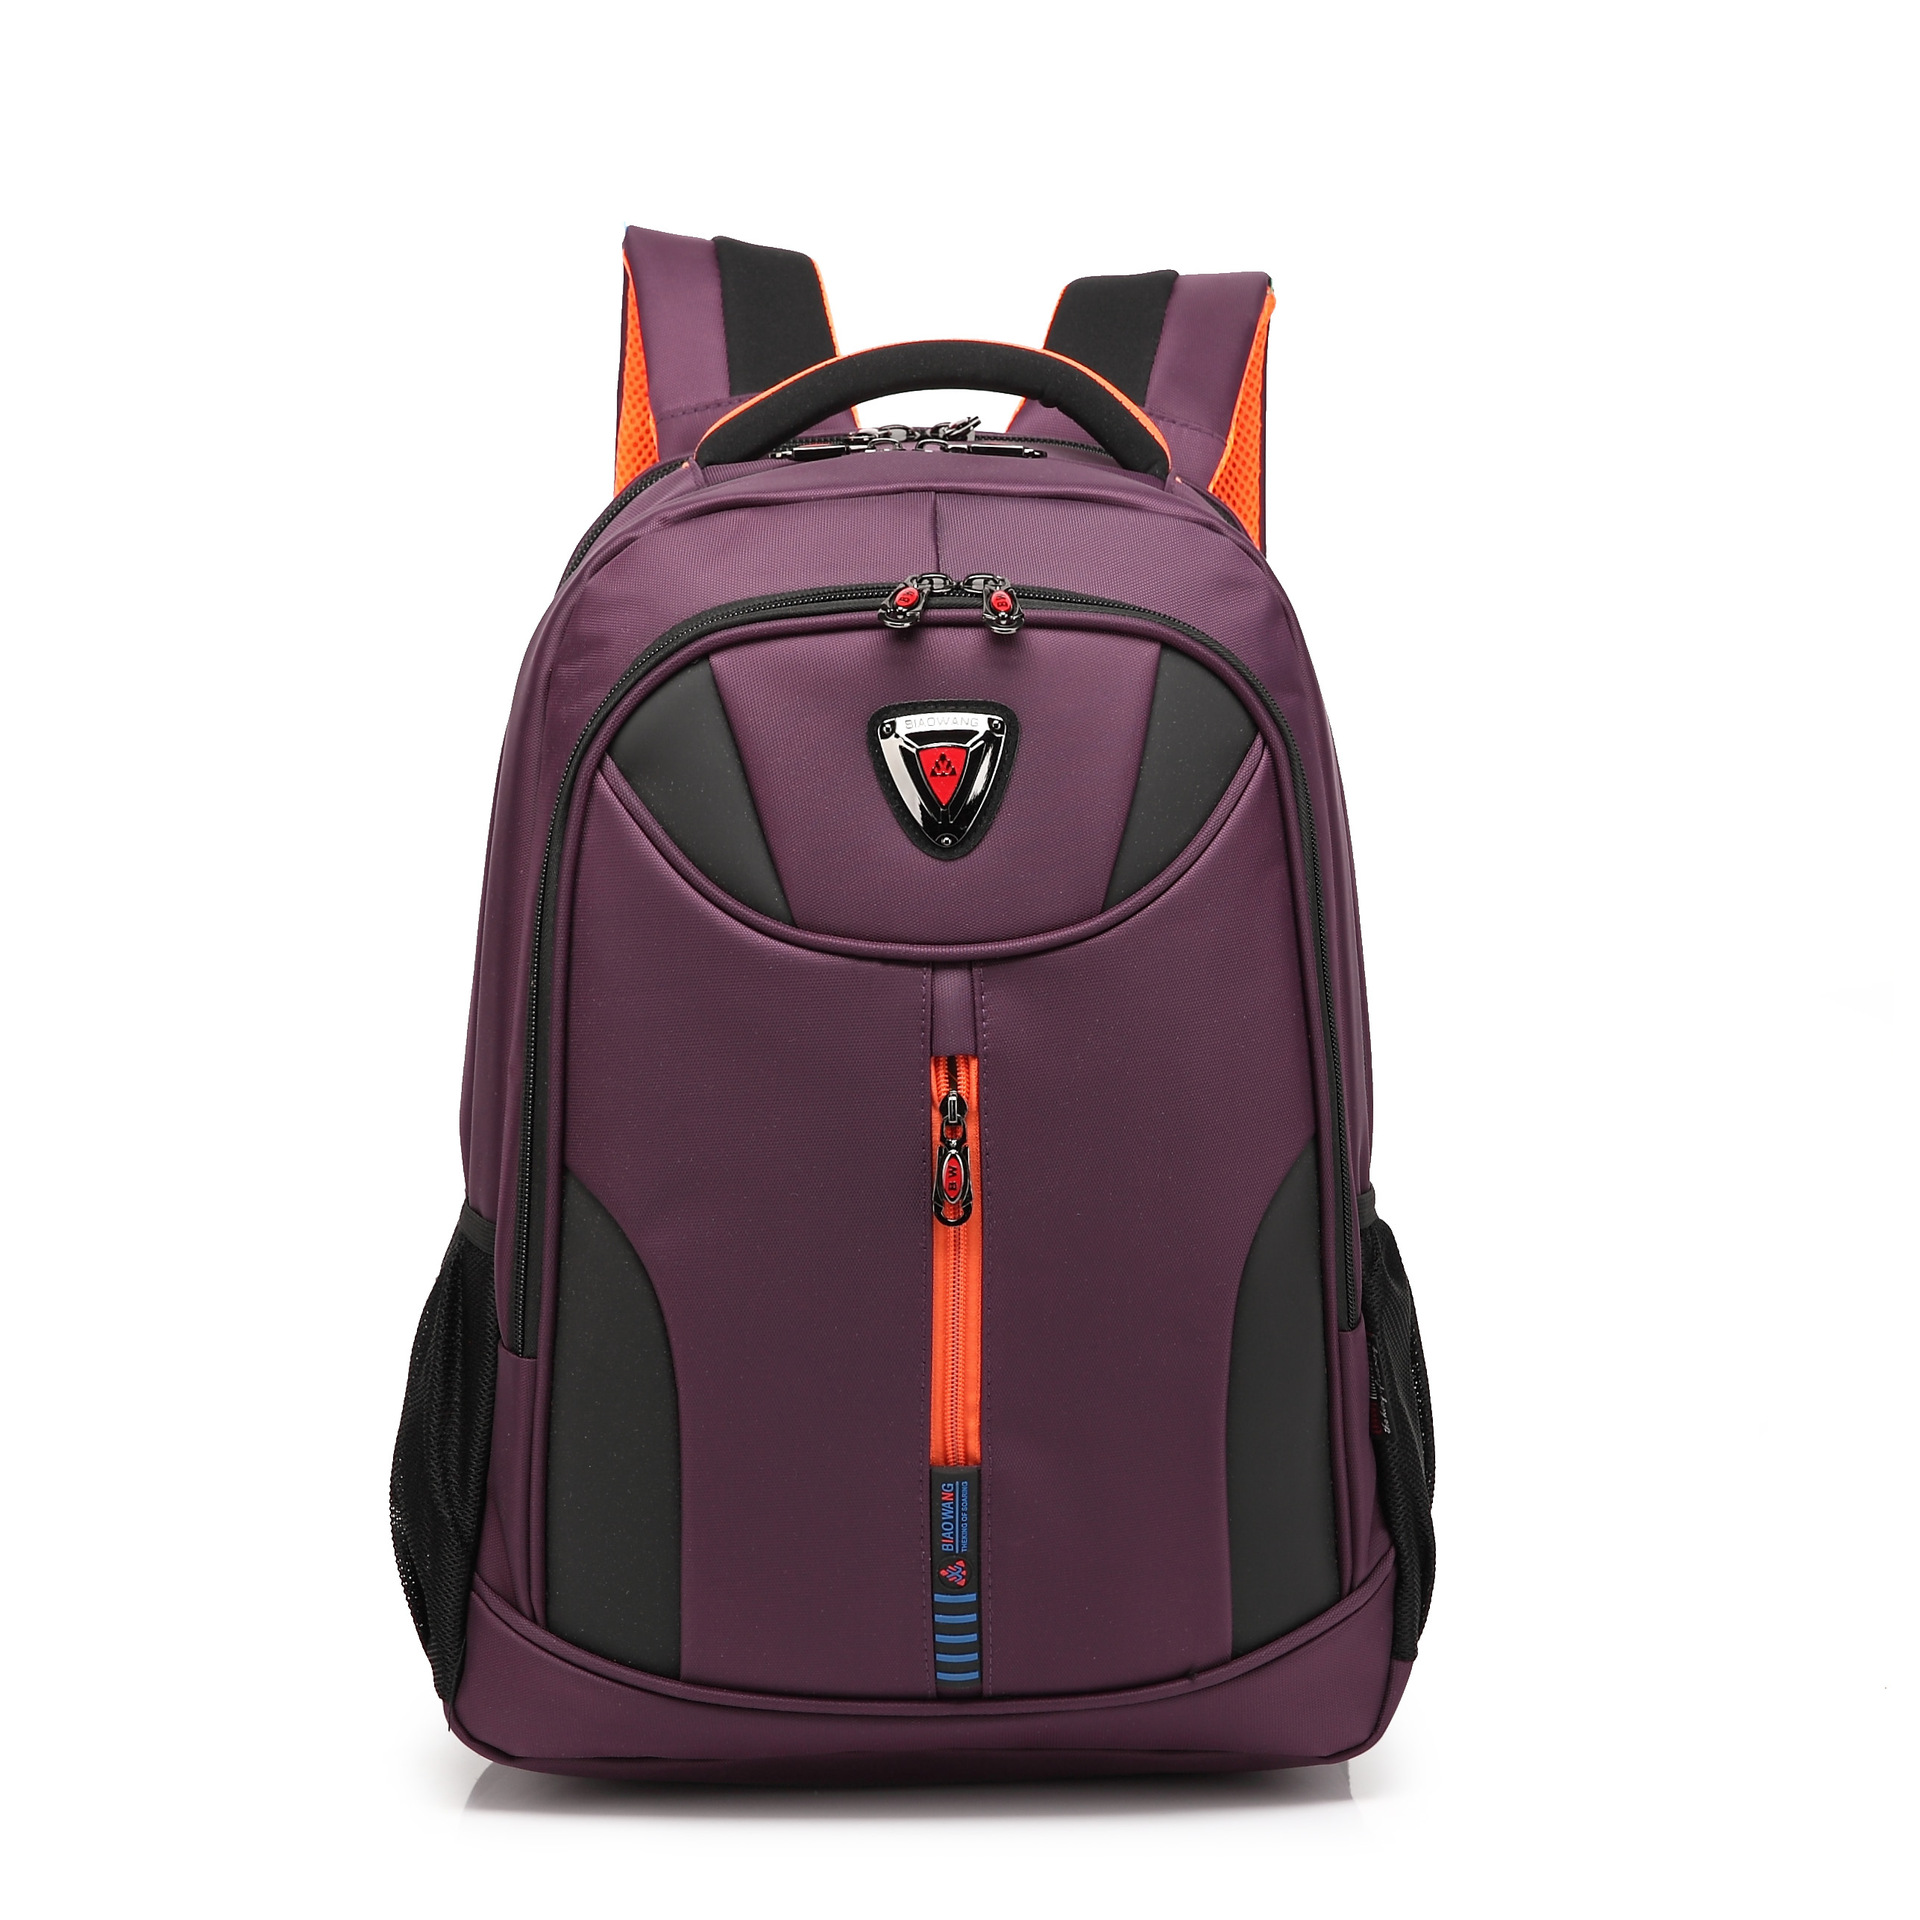 Large Backpacks For High School ZmVamFA3